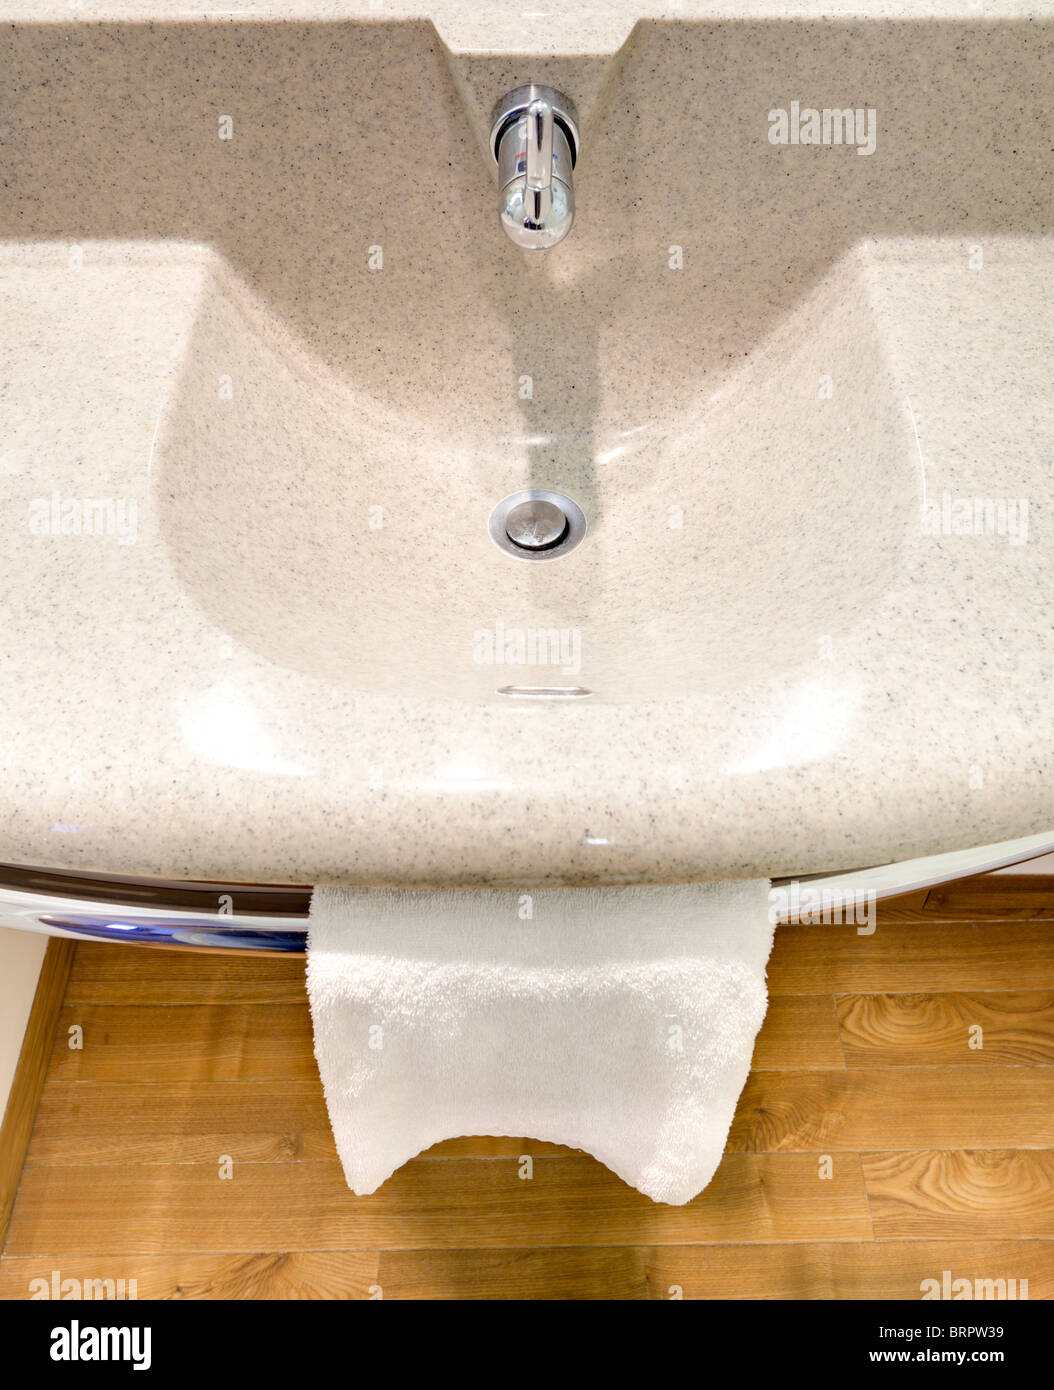 Sink tap and towel in a hotel bathroom - Stock Image